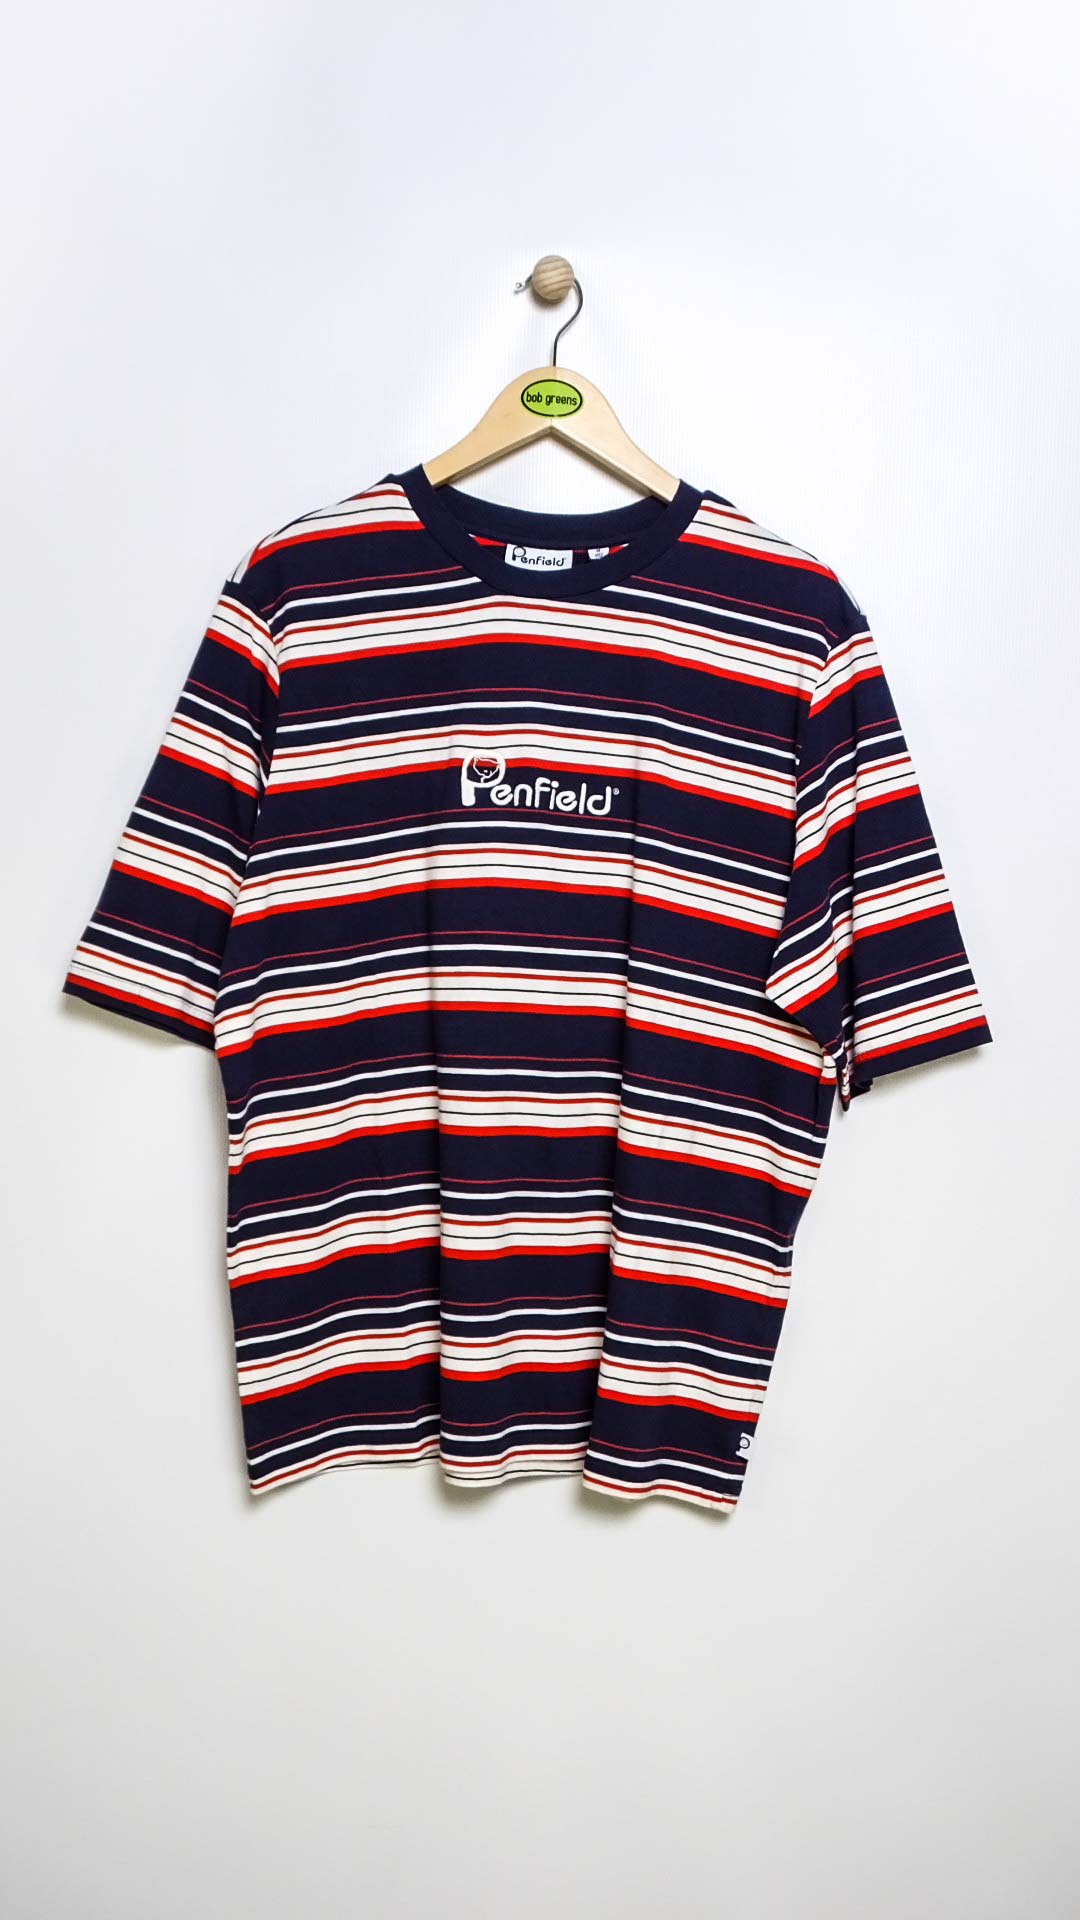 sale usa online biggest discount biggest selection Penfield Guano T-shirt - Navy